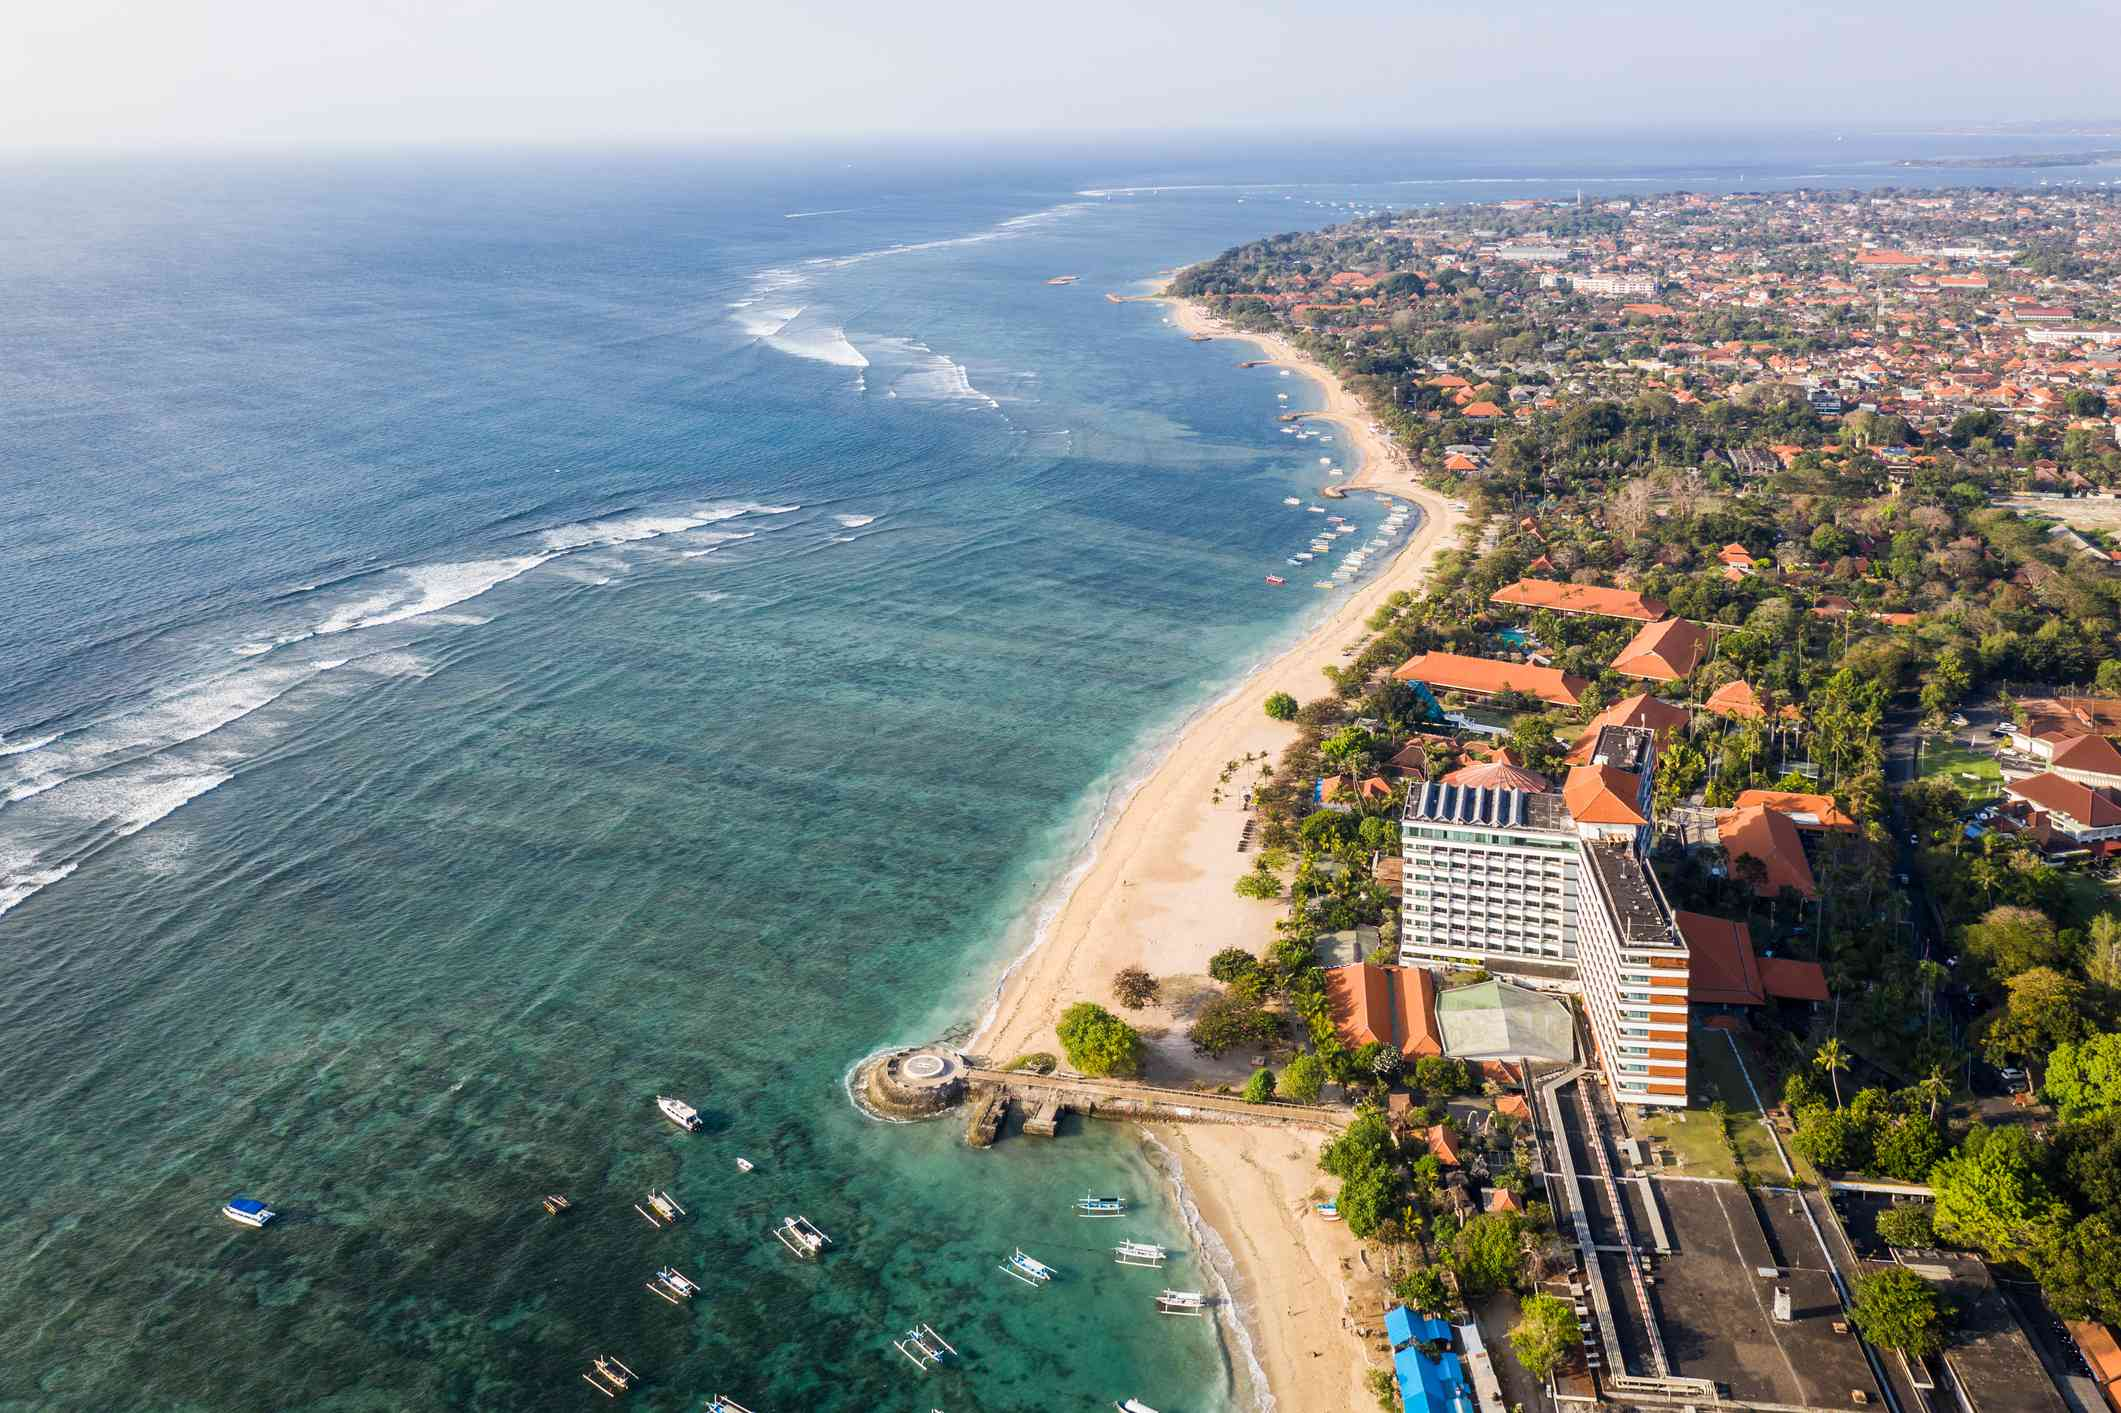 Aerial view of Sanur beach in Bali, Indonesia